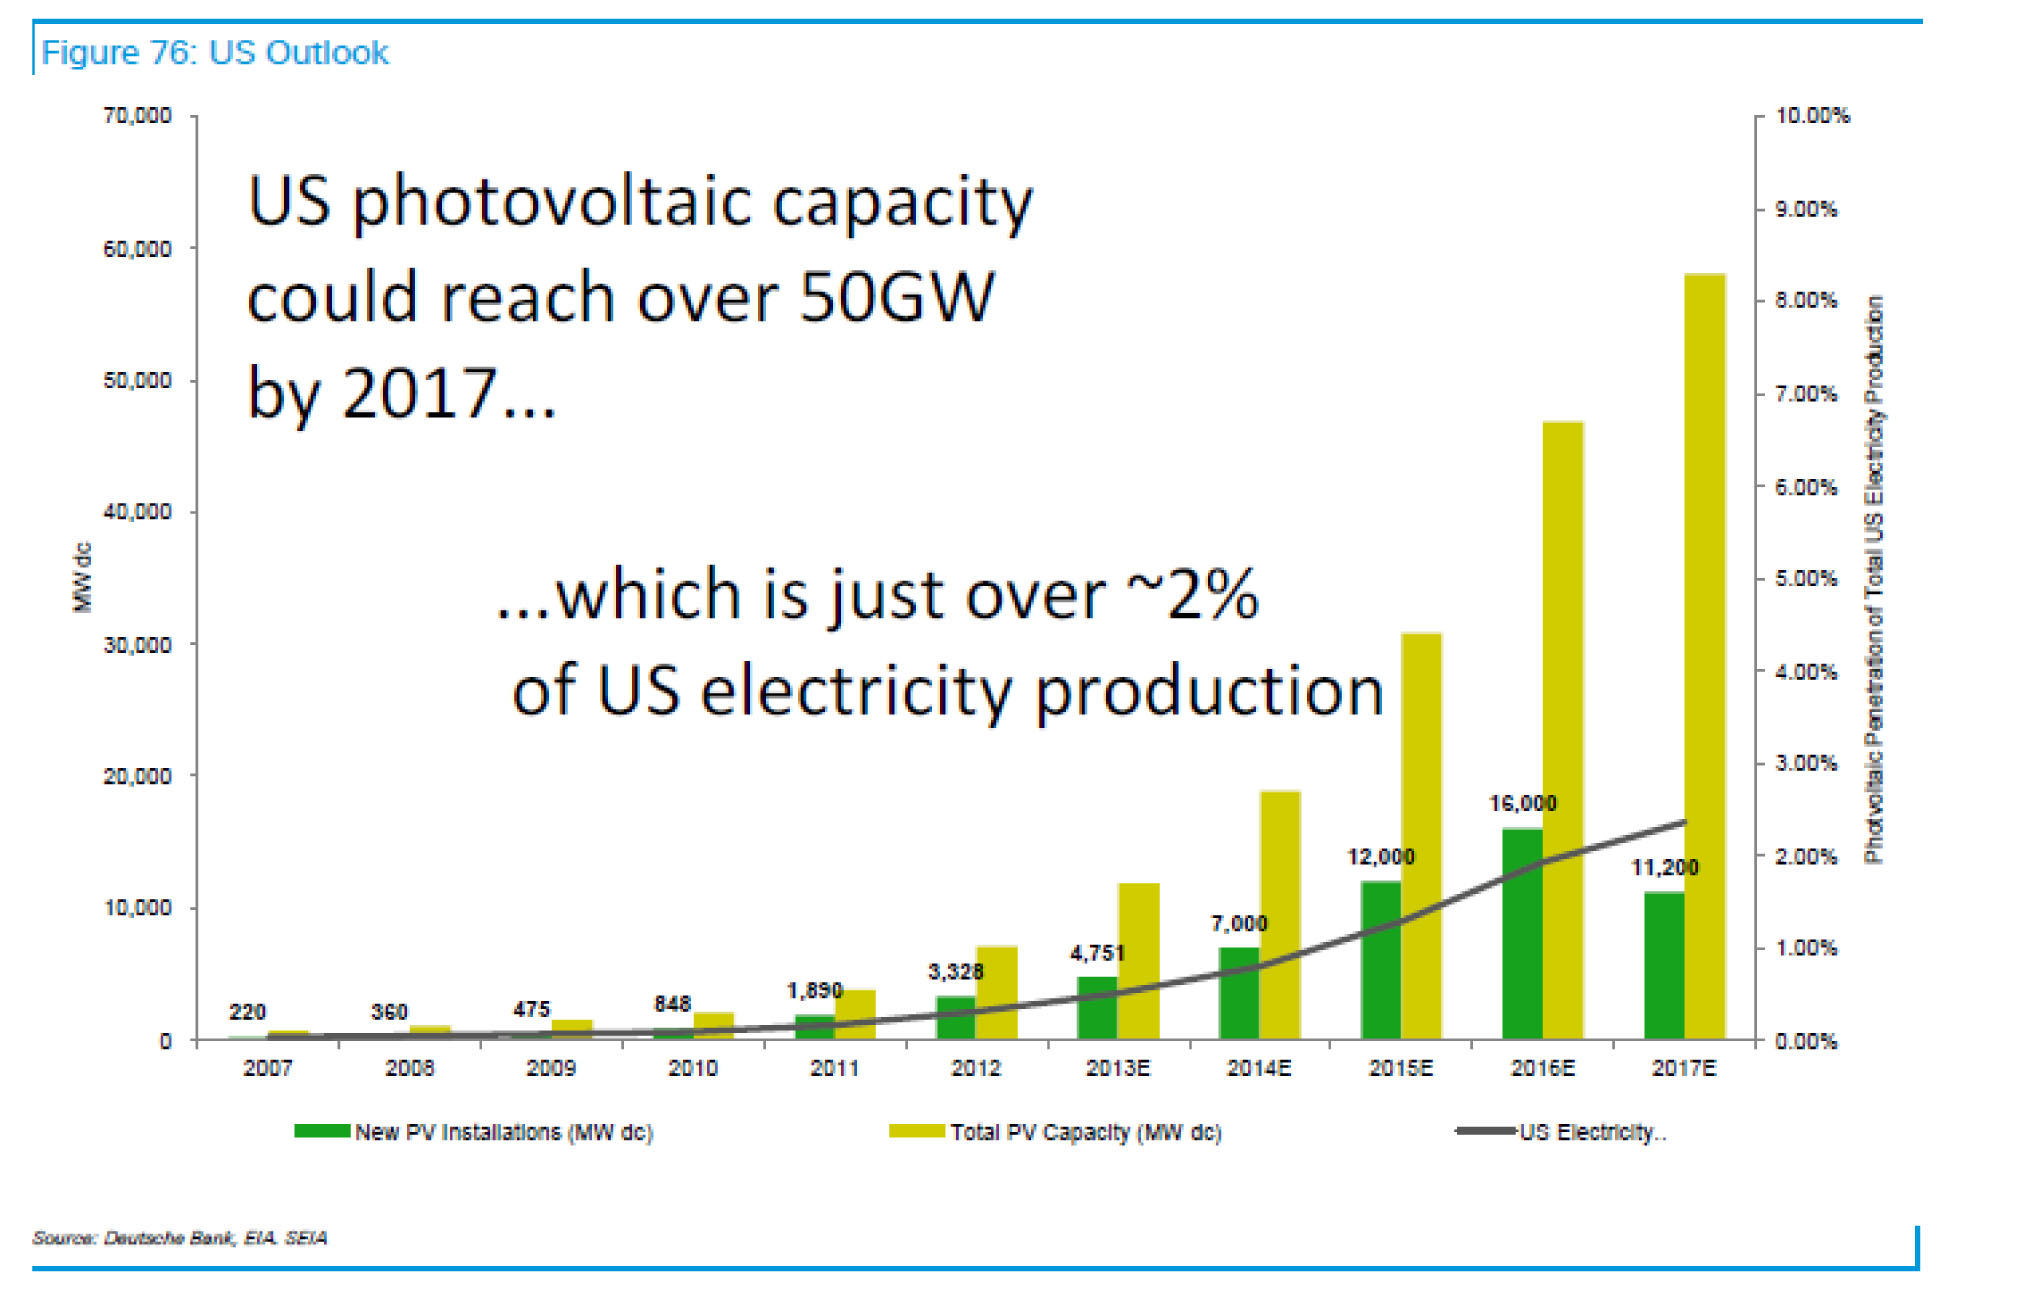 wamsted on energy that year the company said new pv installations should still top 11 000 mw easily topping any previous 12 months save the projected 2015 2016 boom years